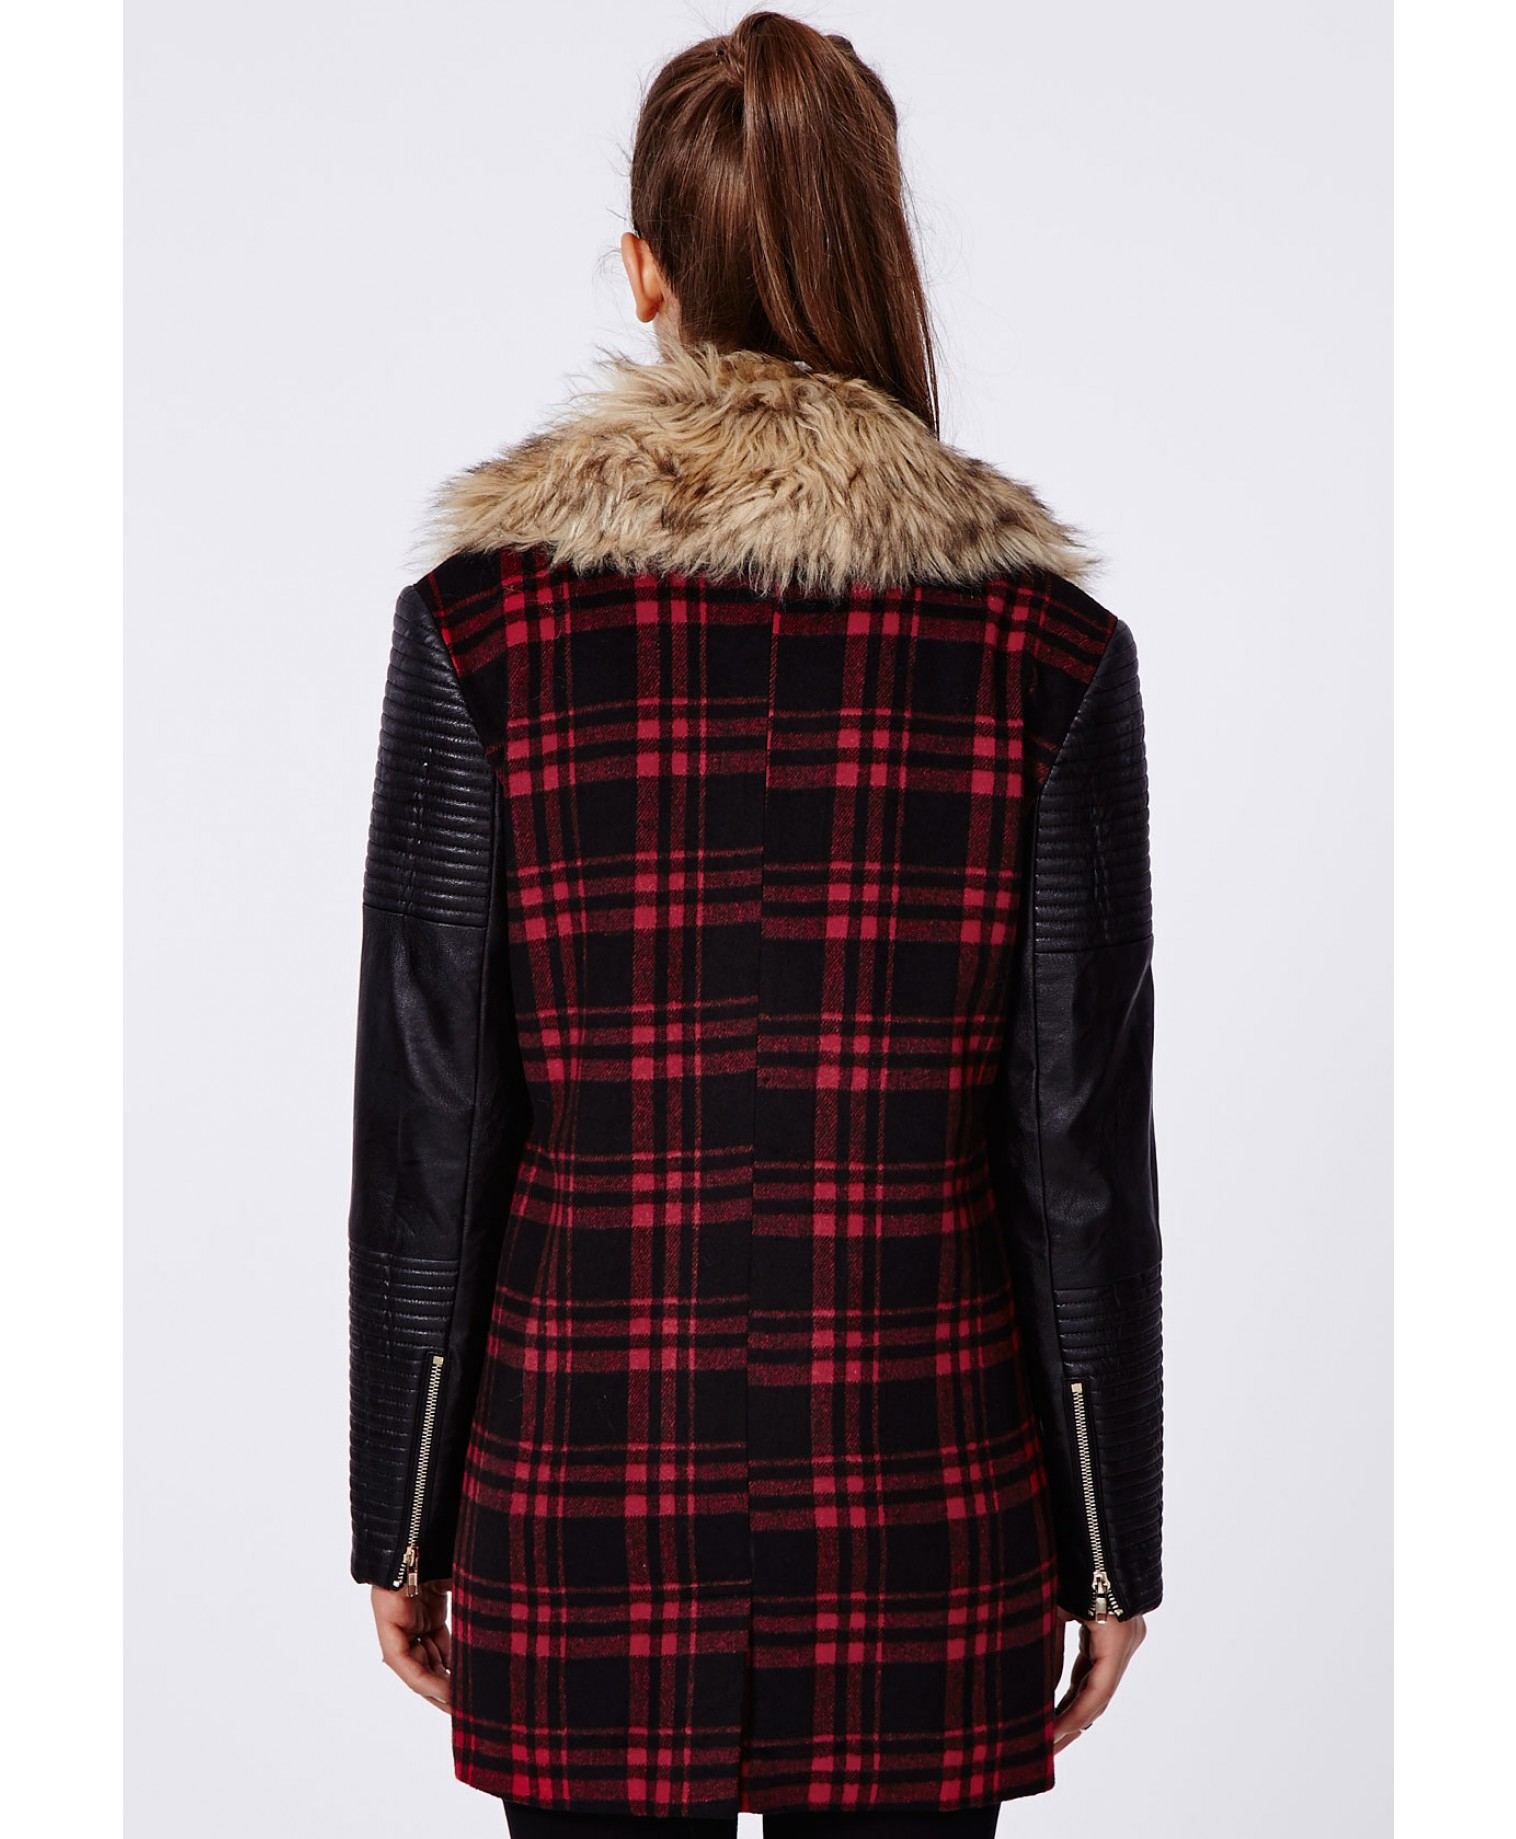 Missguided Orla Faux Fur Leather Biker Sleeve Coat Red Check in